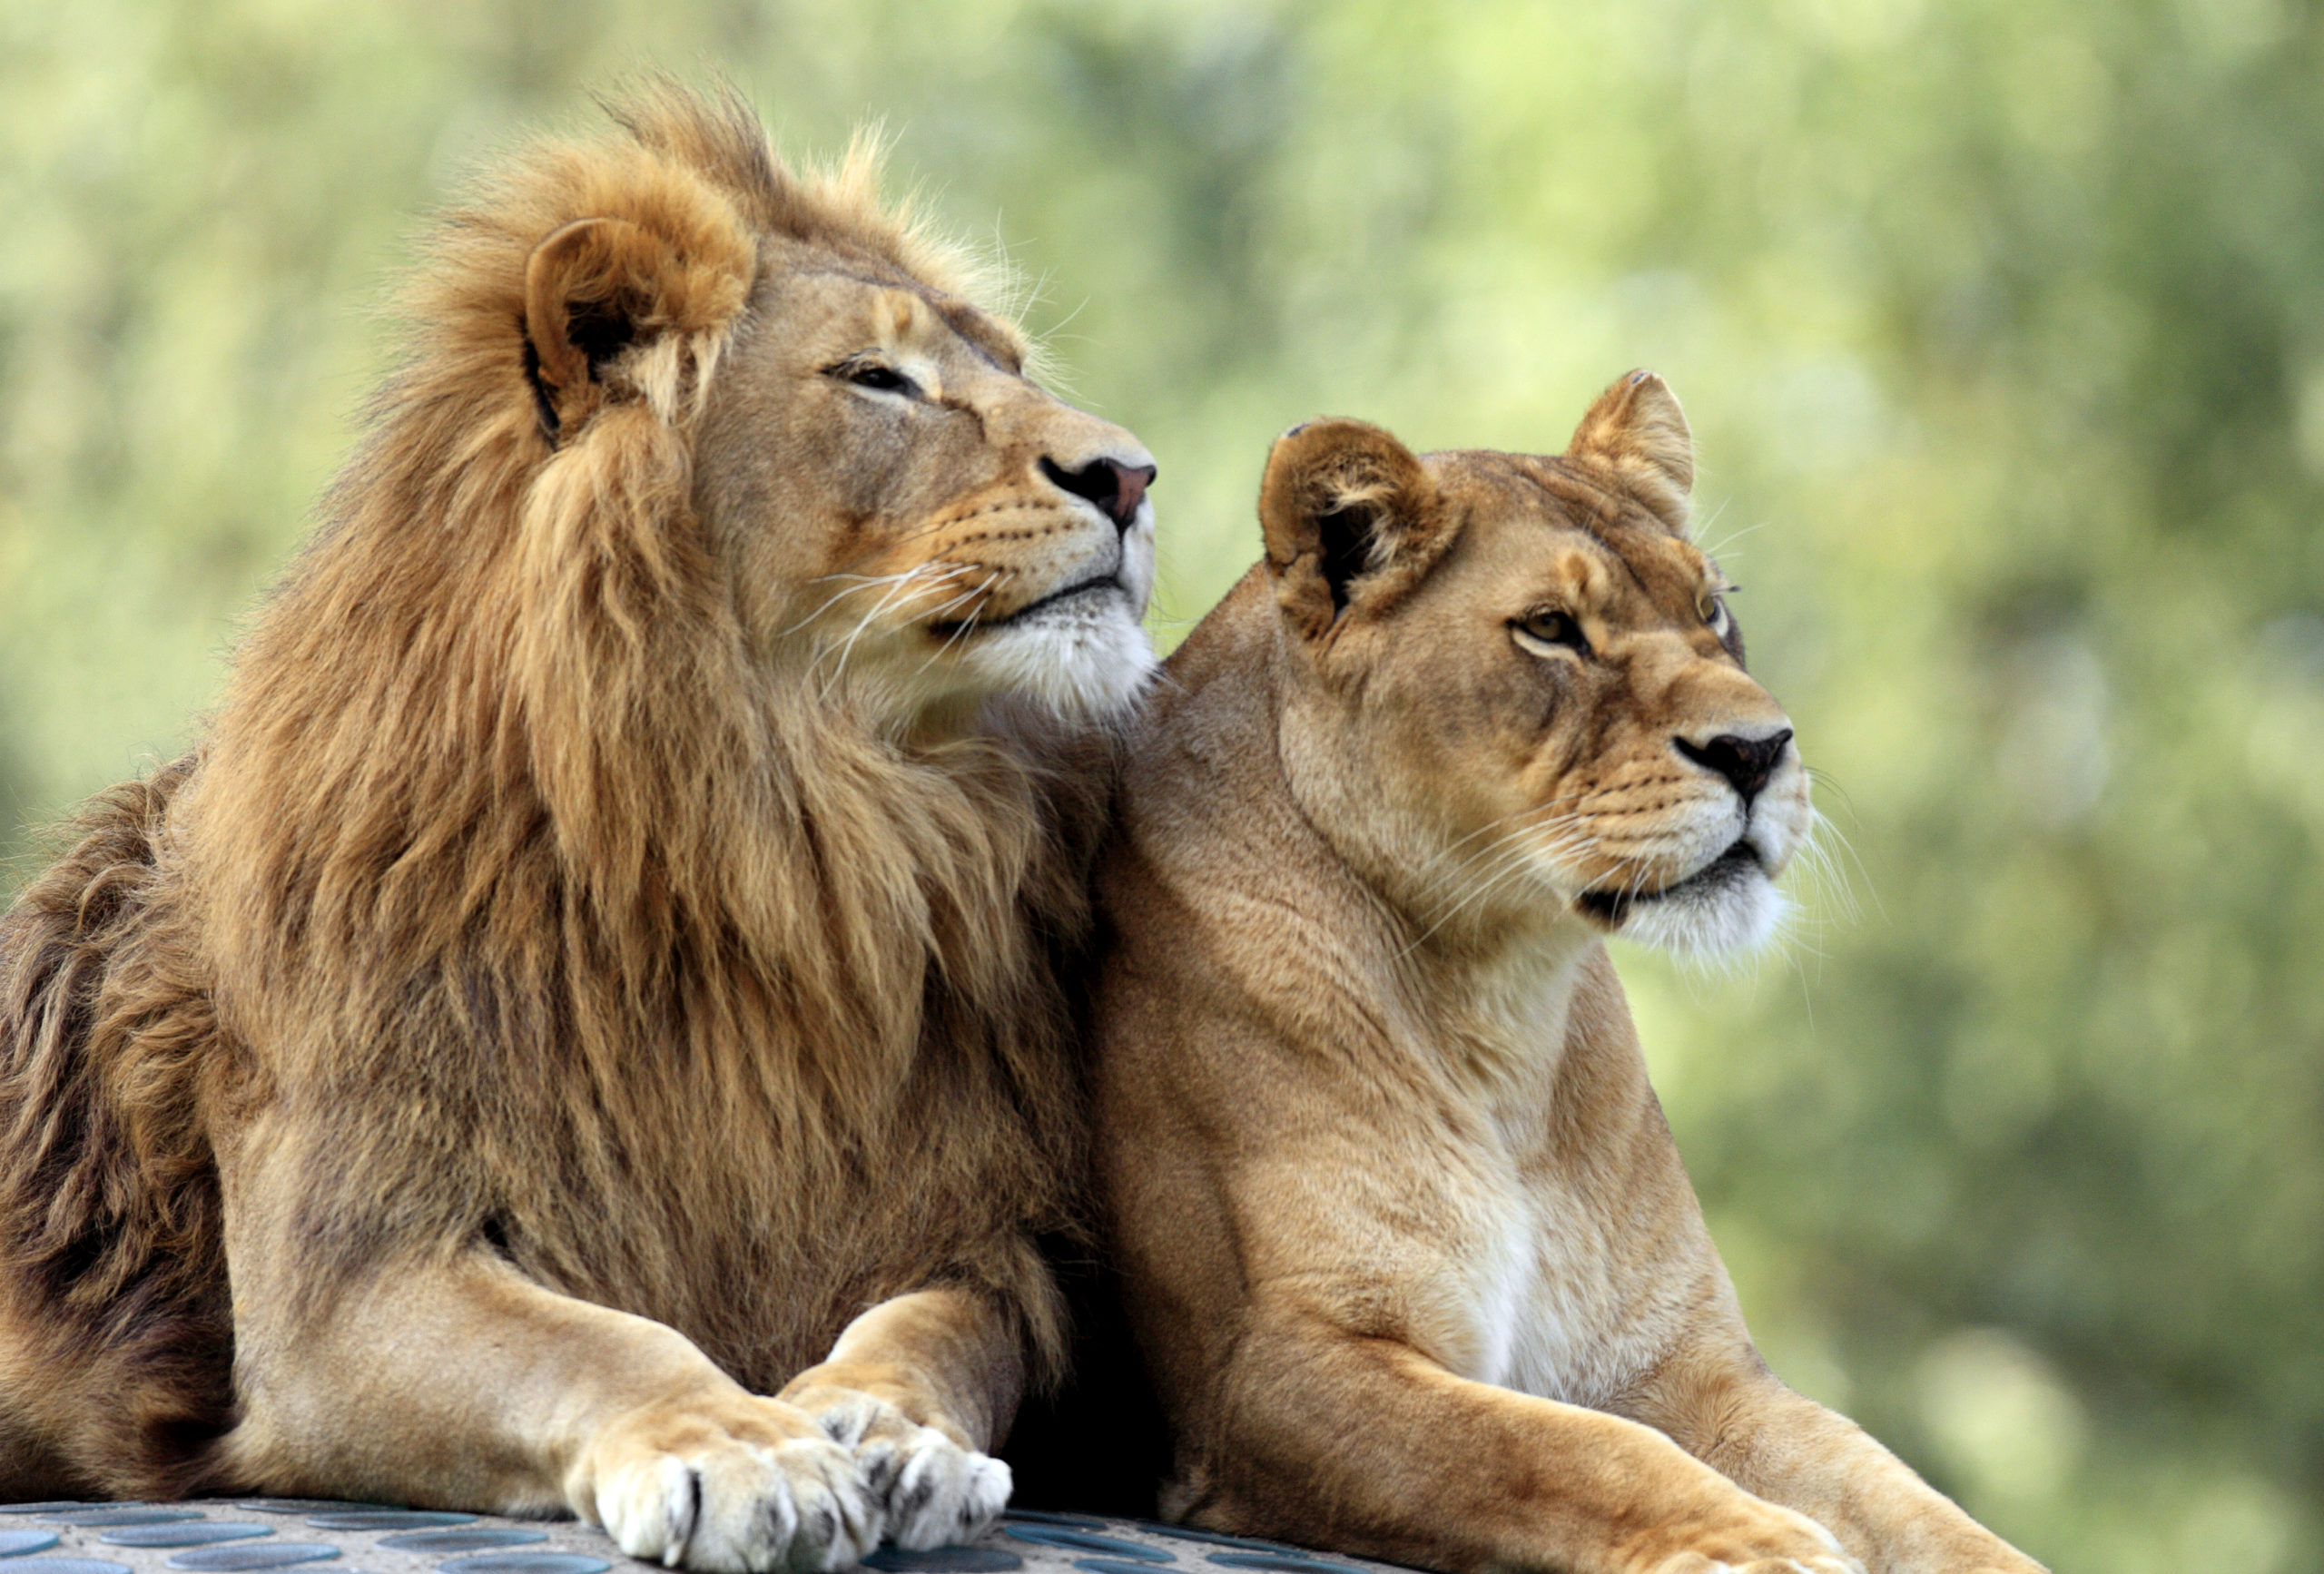 Pair of adult Lions in zoo